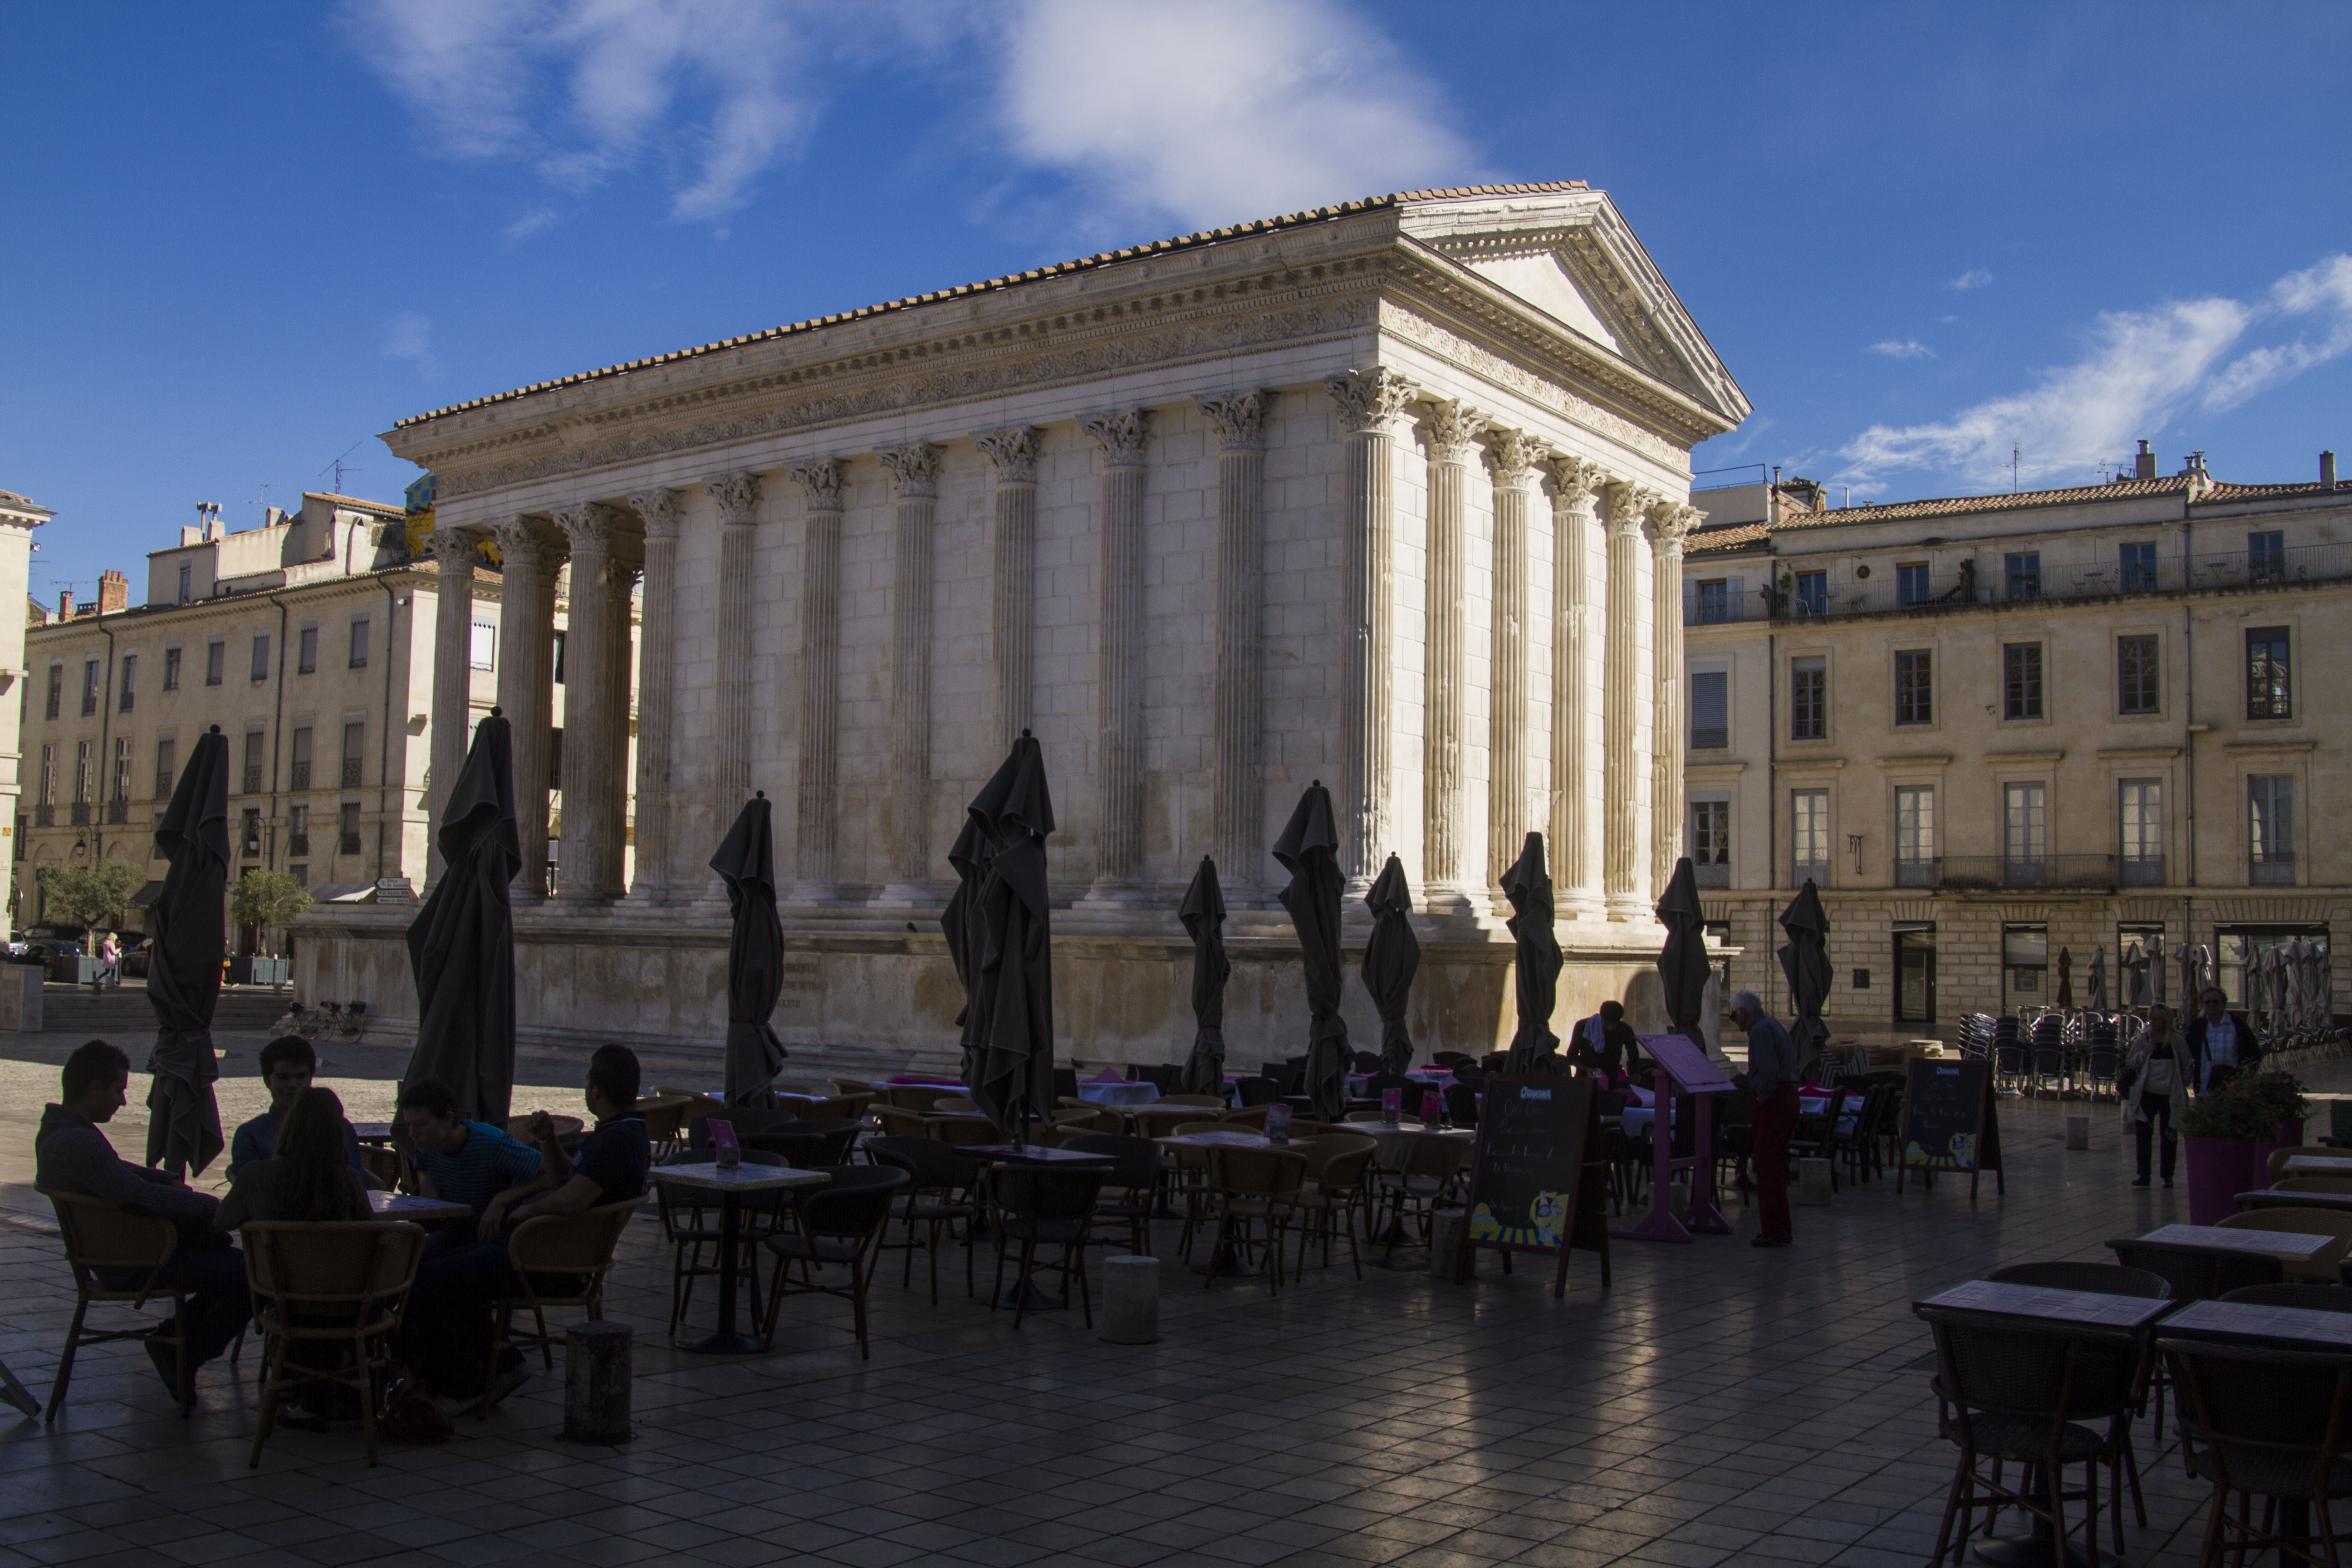 Maison carr e n mes france treading in the deep end - Maison carree nimes ...